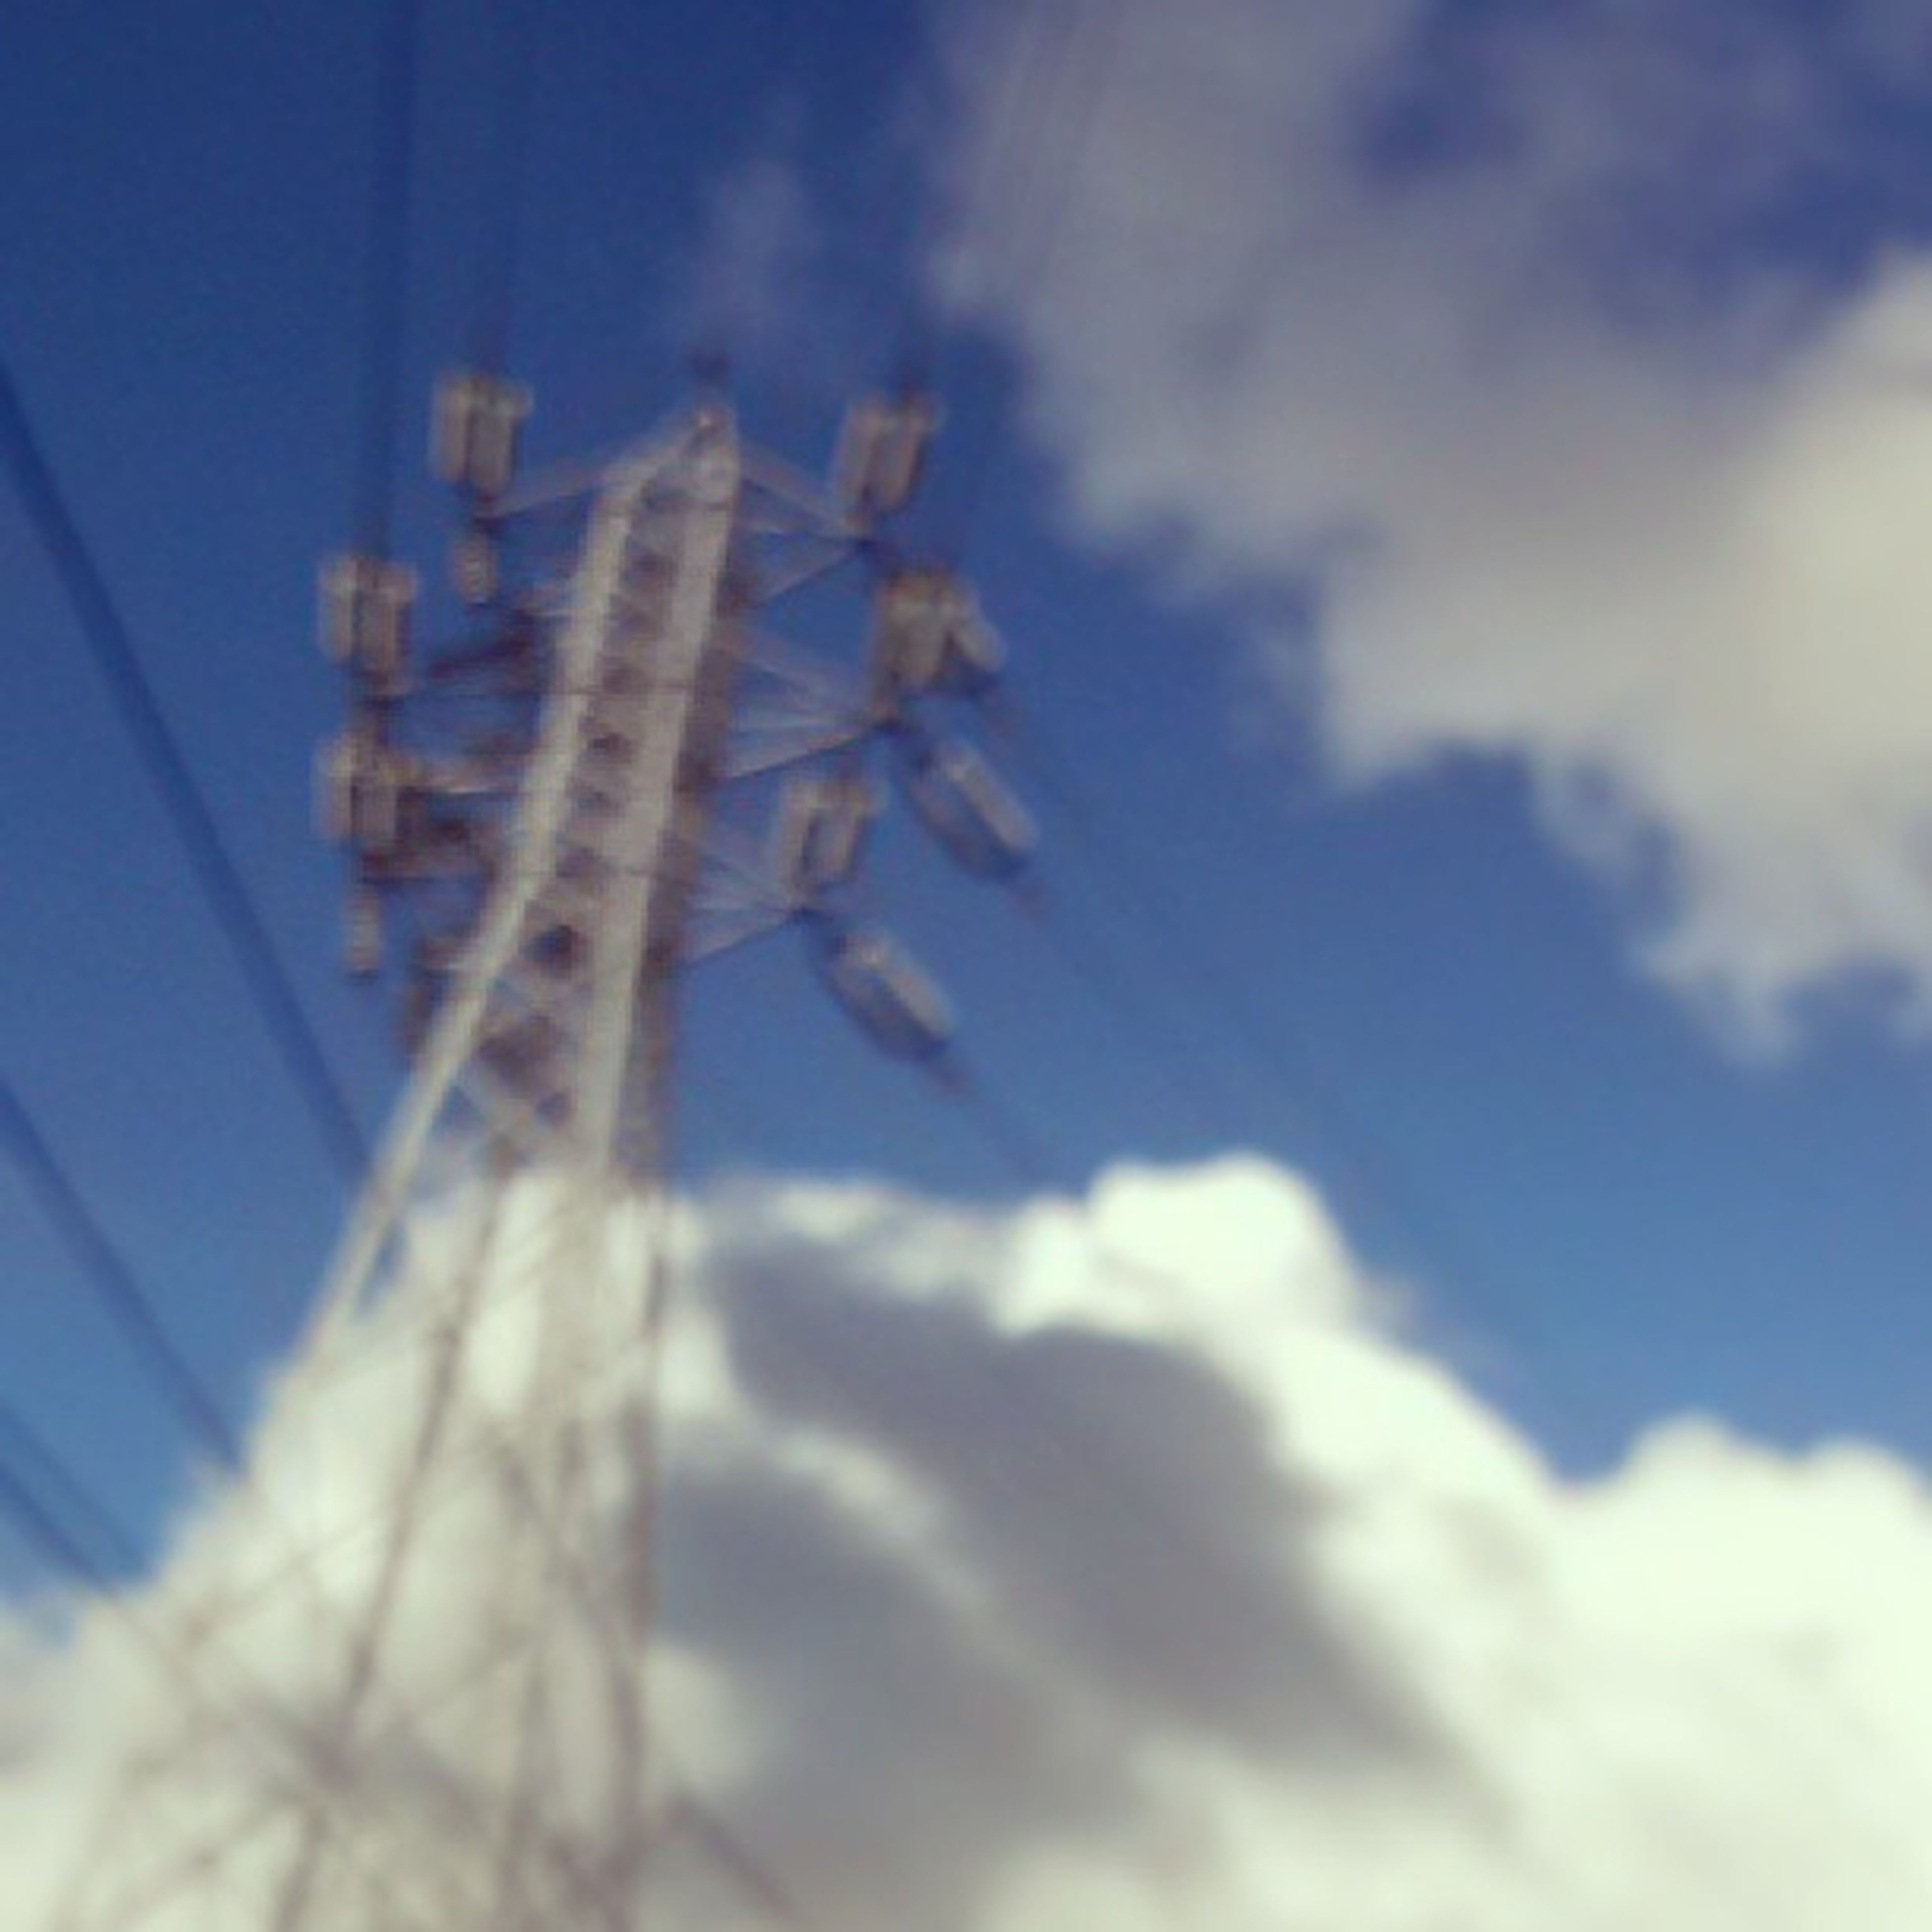 low angle view, sky, blue, cloud - sky, nature, cloud, outdoors, day, no people, built structure, beauty in nature, cloudy, sunlight, growth, close-up, power line, dusk, tranquility, white color, architecture